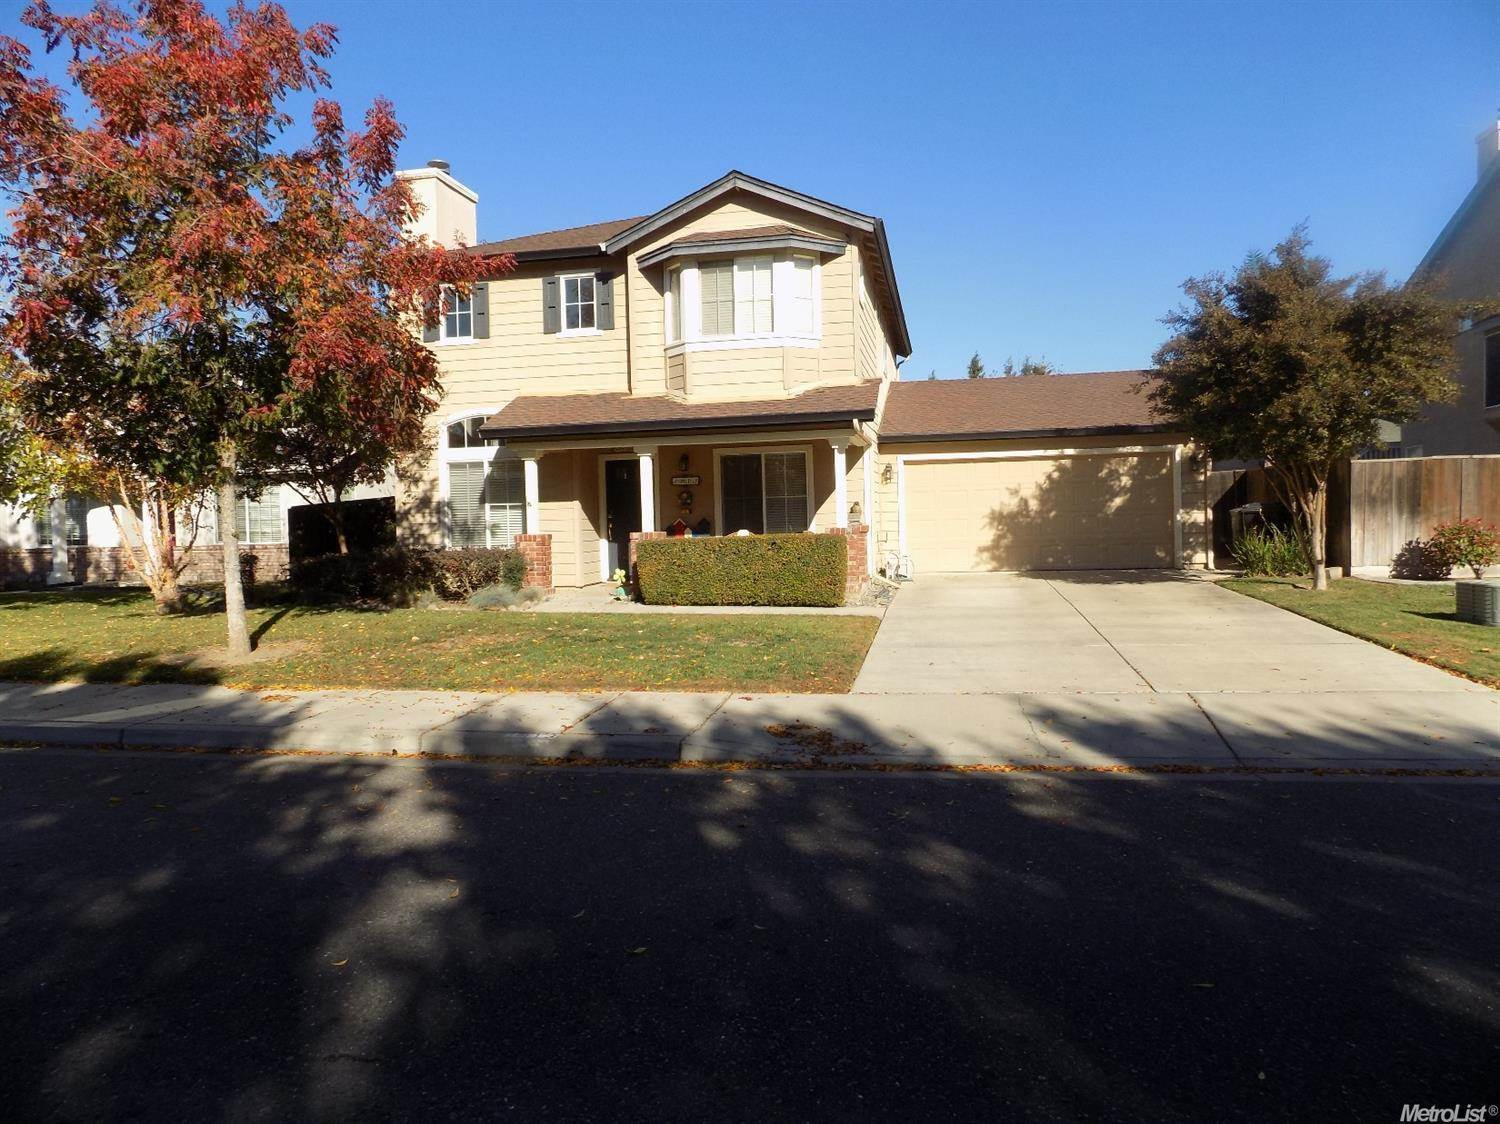 Modesto ca houses for sale in stanislaus county page 2 for House modesto